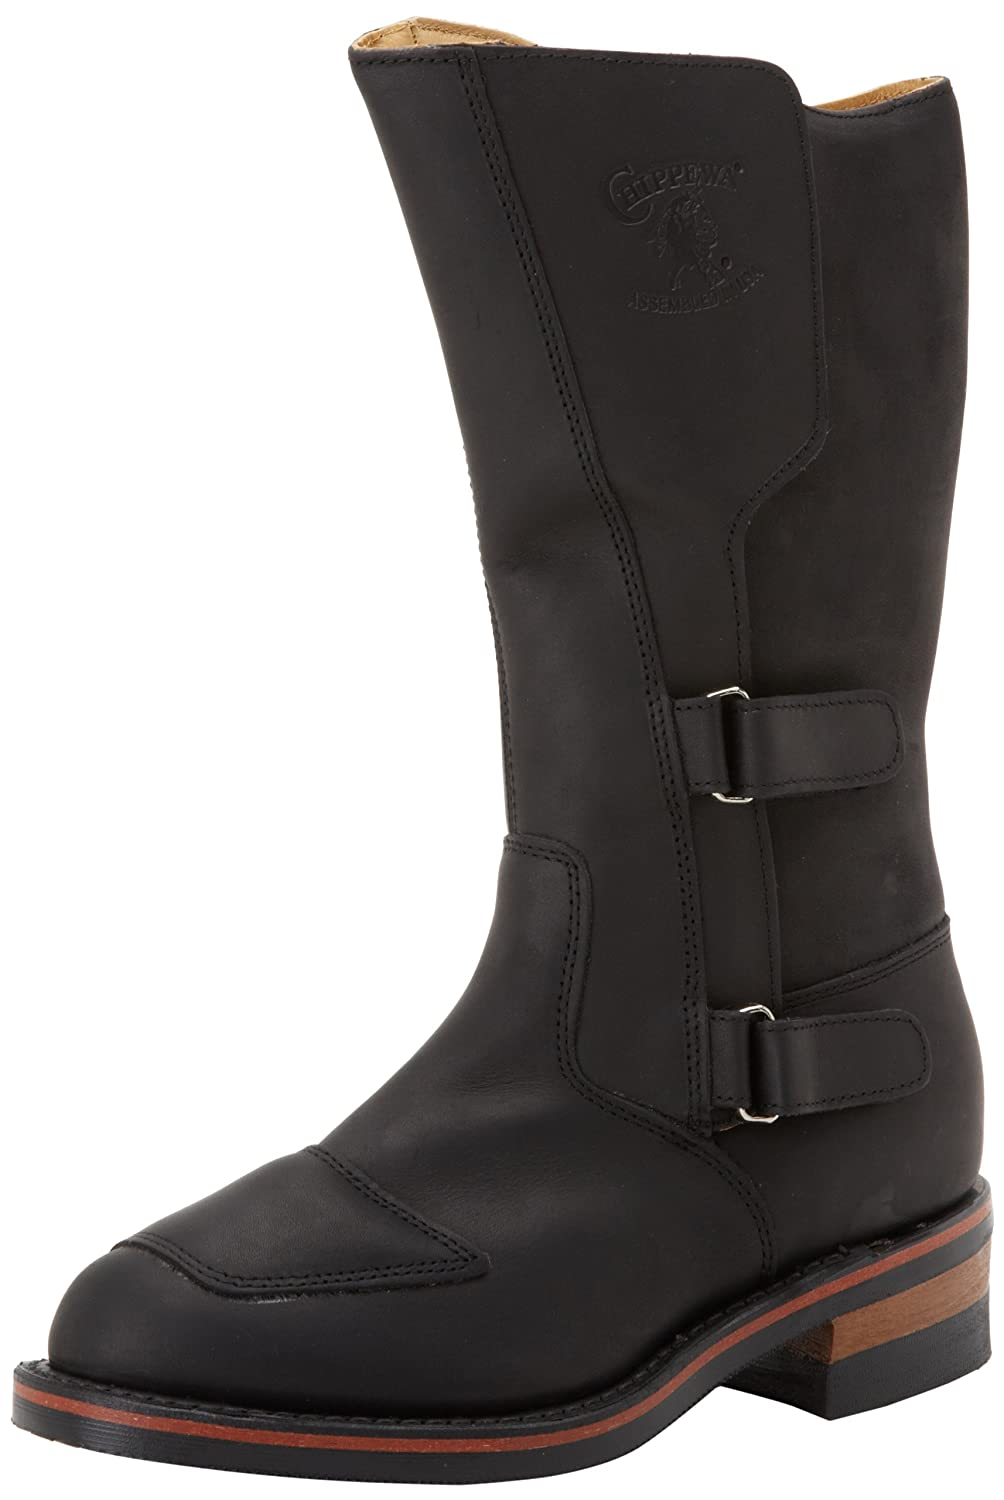 Men's Black Leather 12-inch Rally Boots